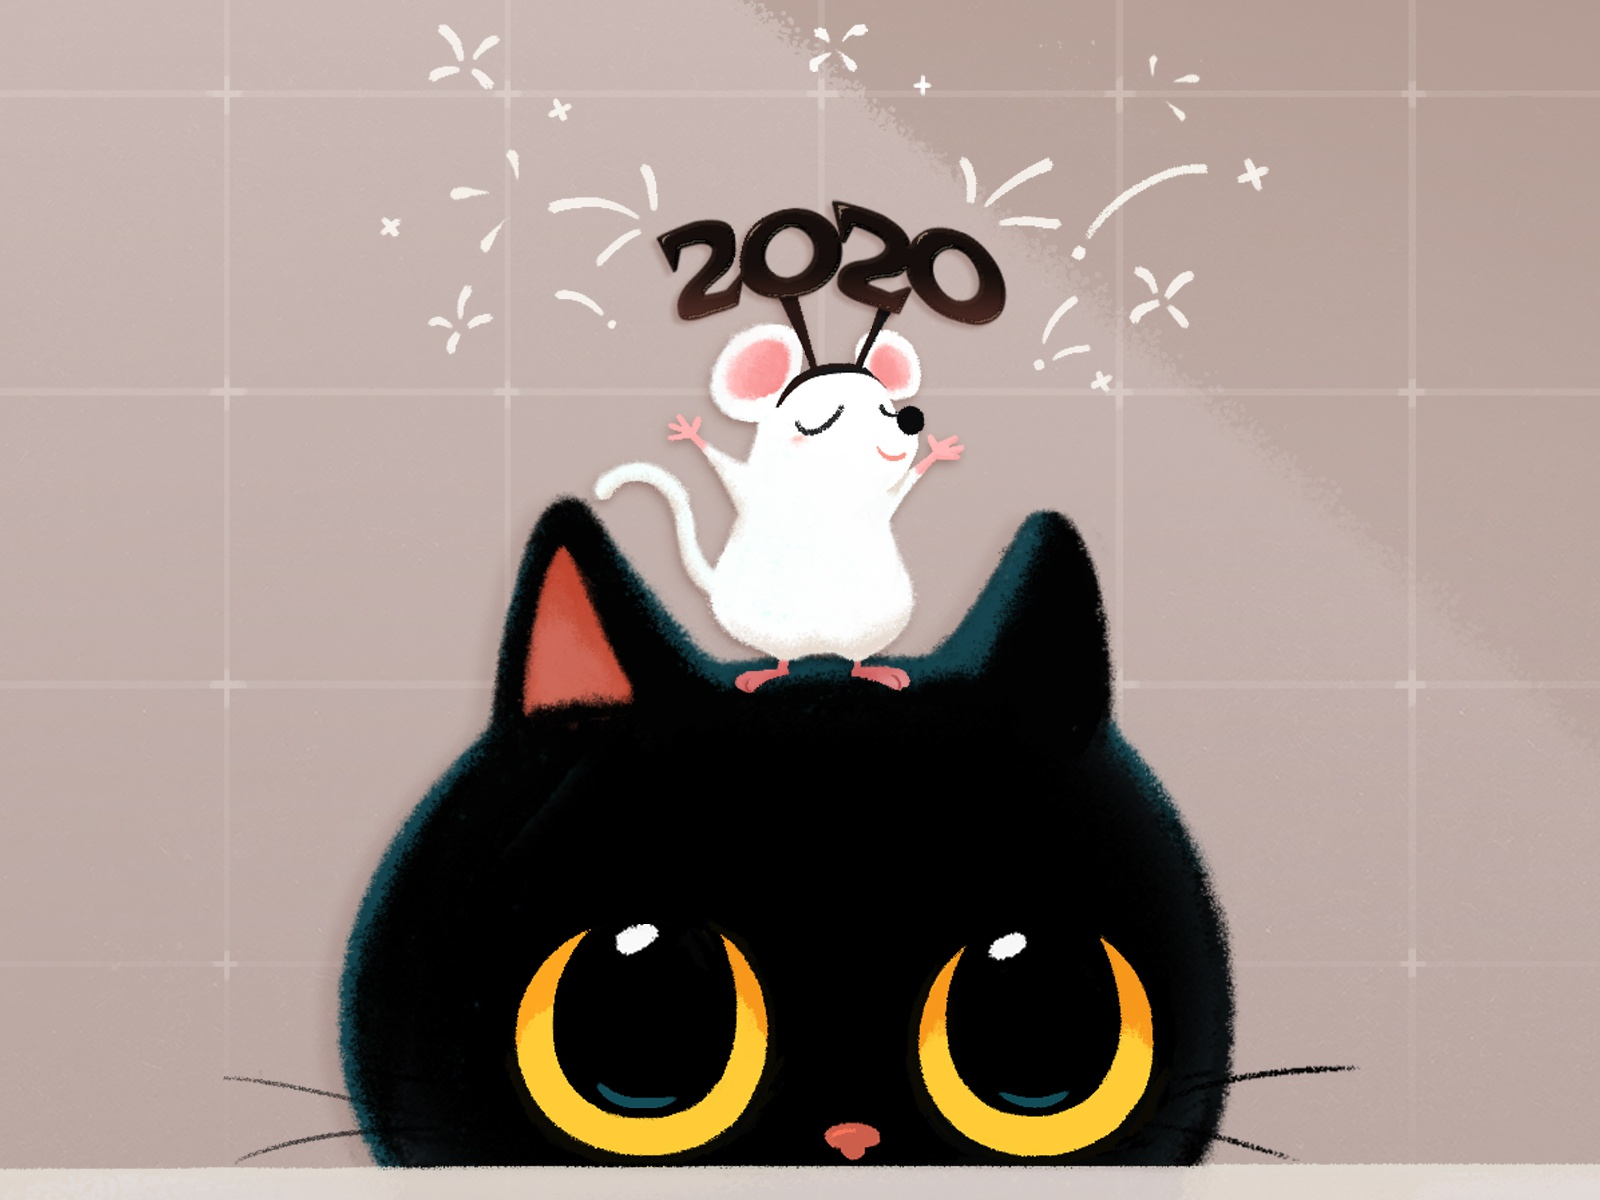 2020 Happy New Year By Tinvird On Dribbble